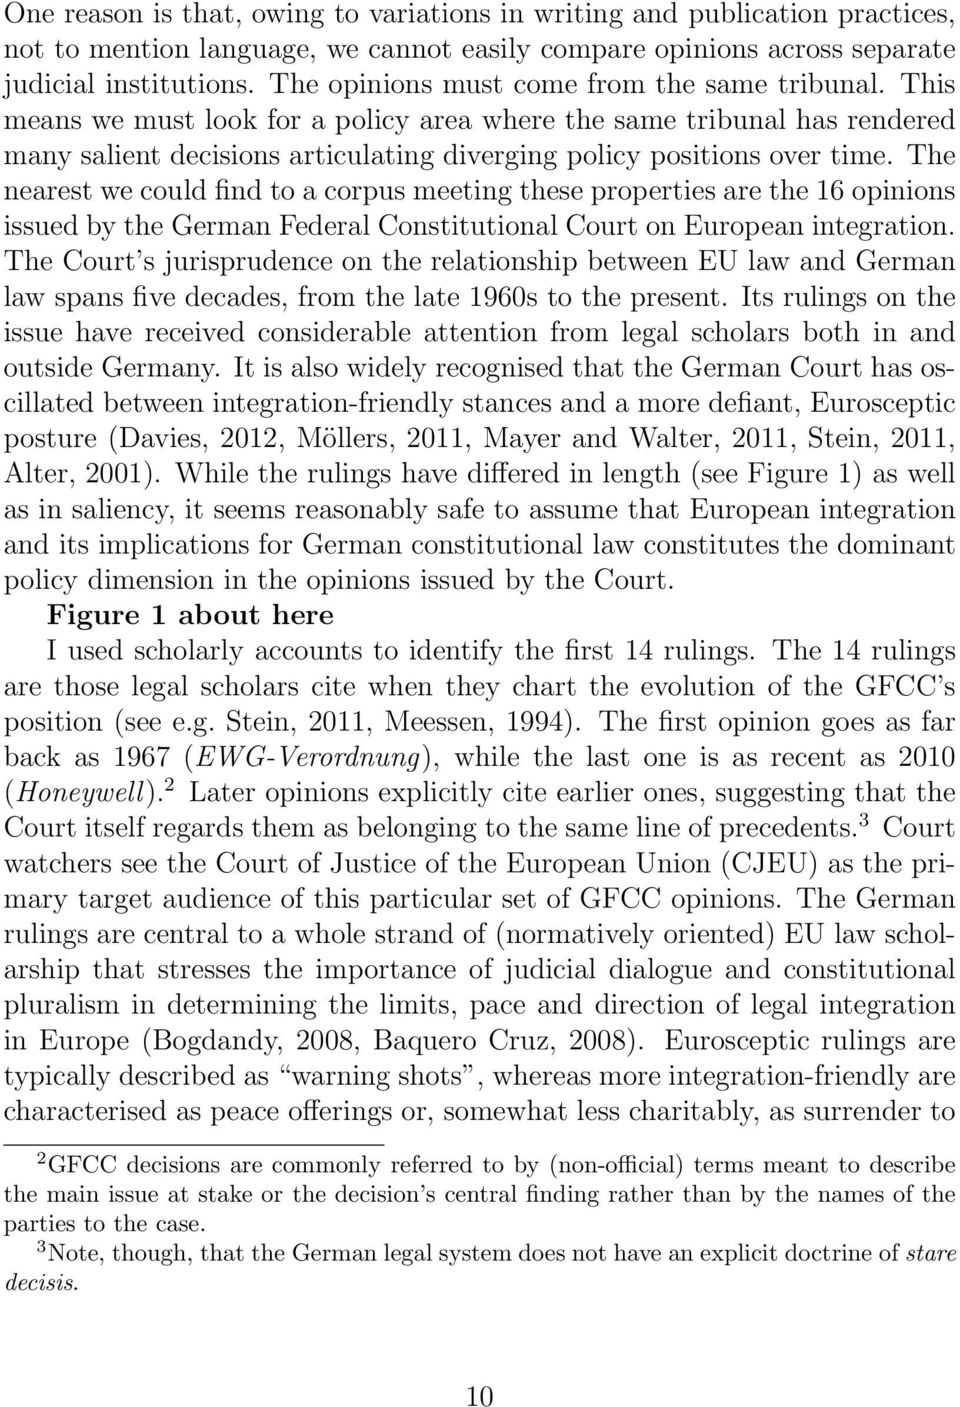 The nearest we could find to a corpus meeting these properties are the 16 opinions issued by the German Federal Constitutional Court on European integration.